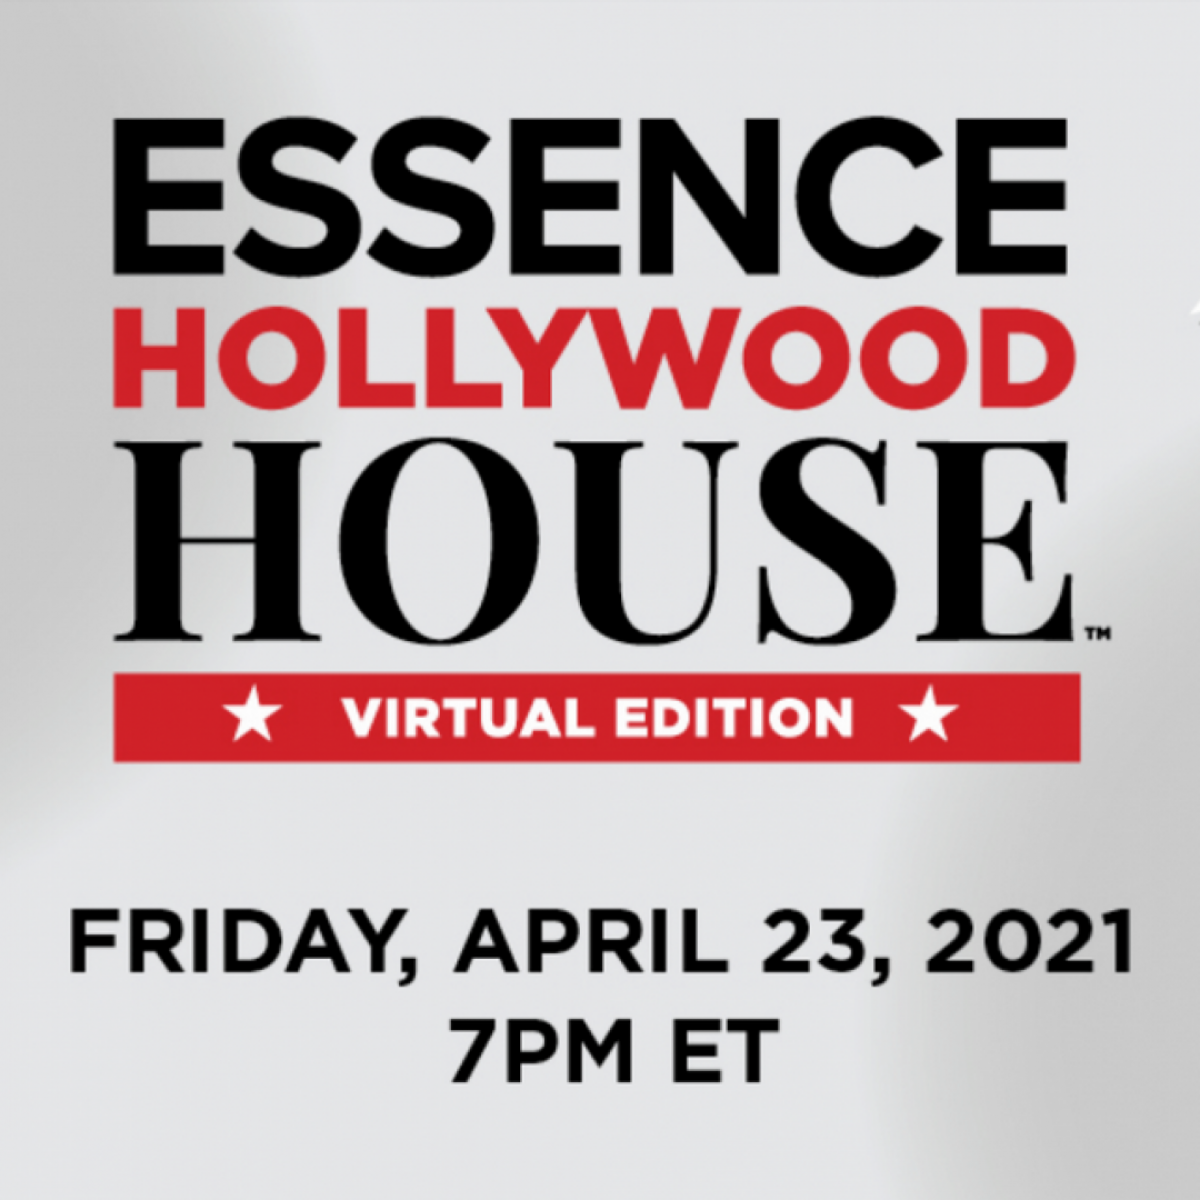 ESSENCE Hollywood House: Join Some Of Your Faves From 'Insecure', 'Bridgerton', 'Snowfall' & More!